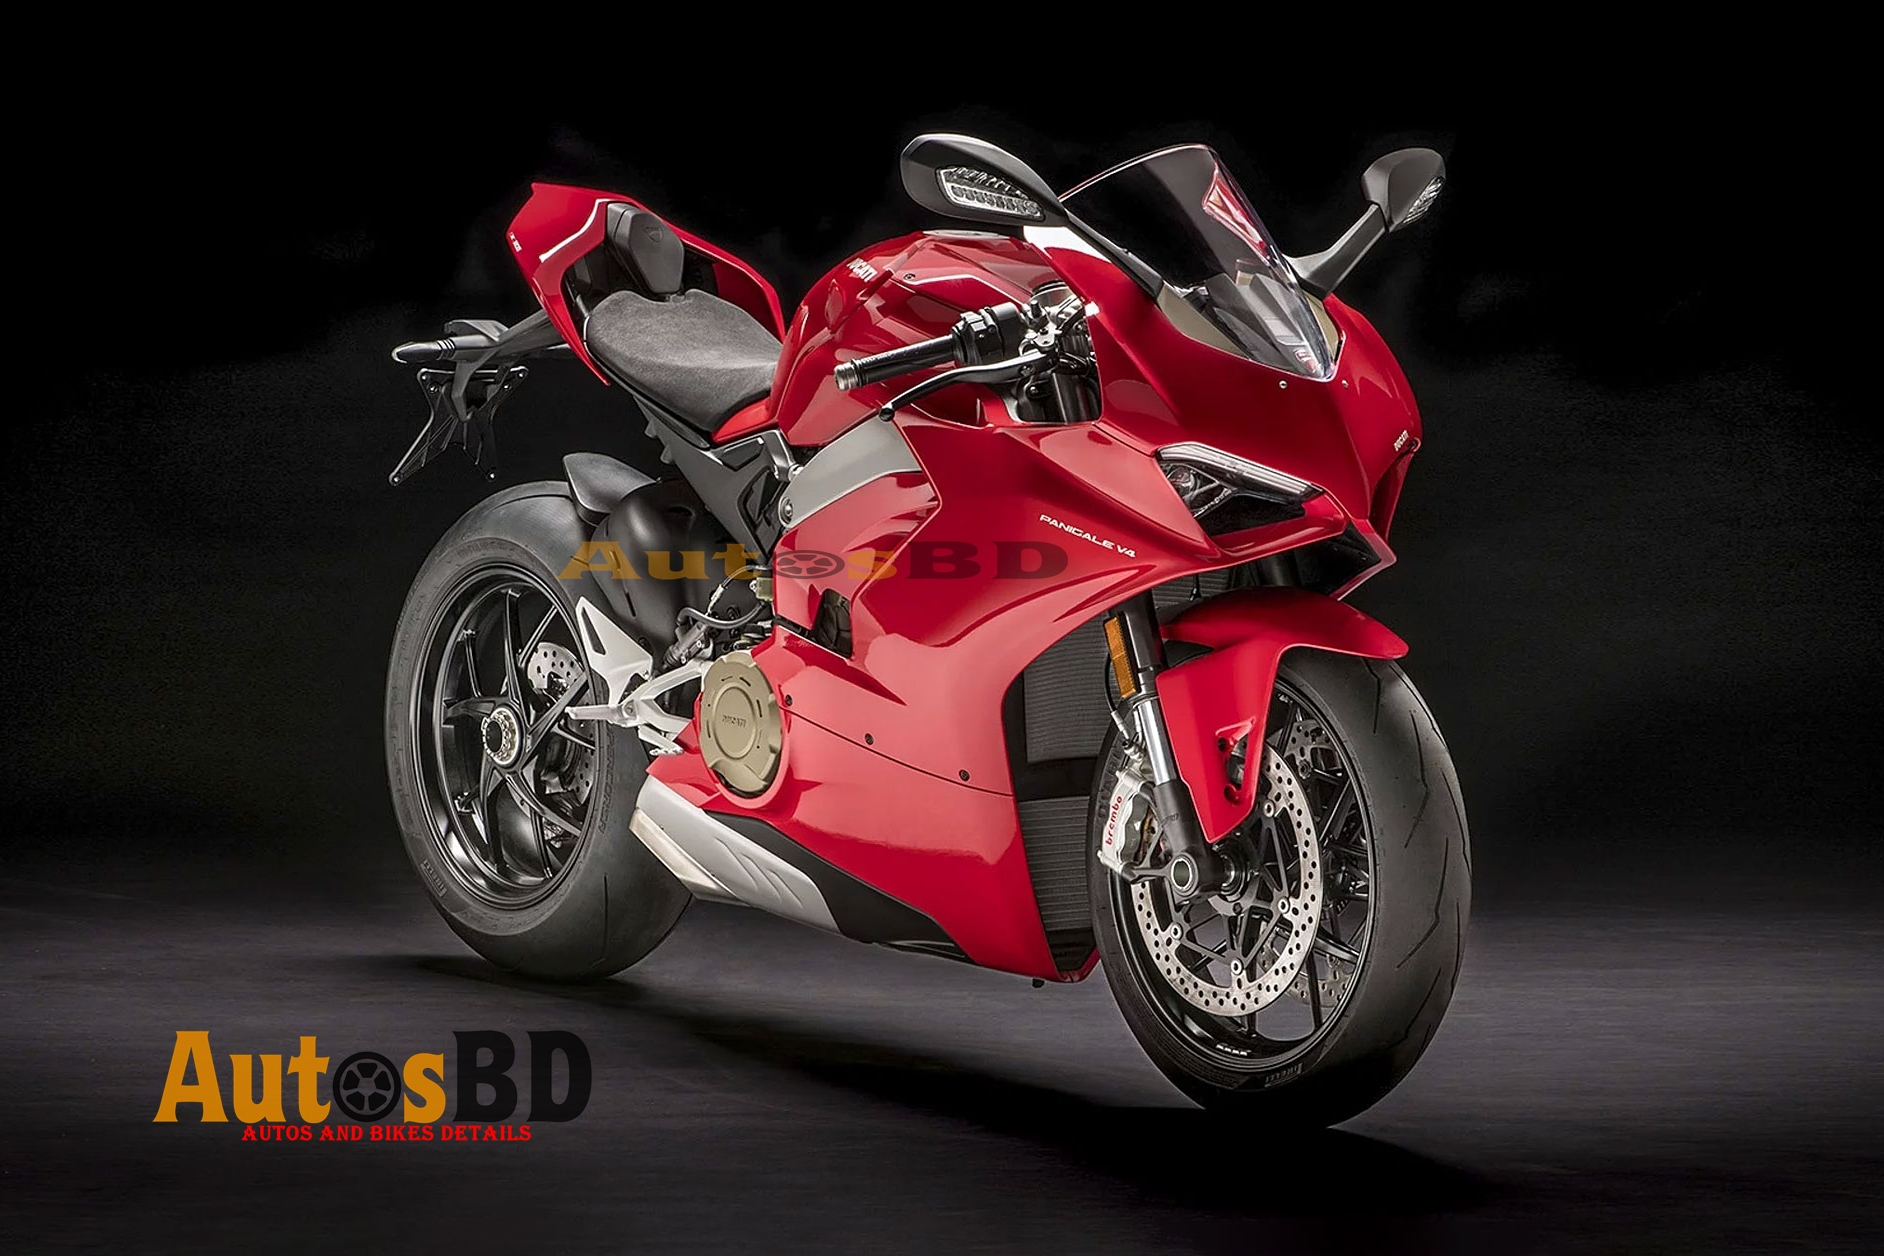 Ducati Panigale V4 Motorcycle Price in India